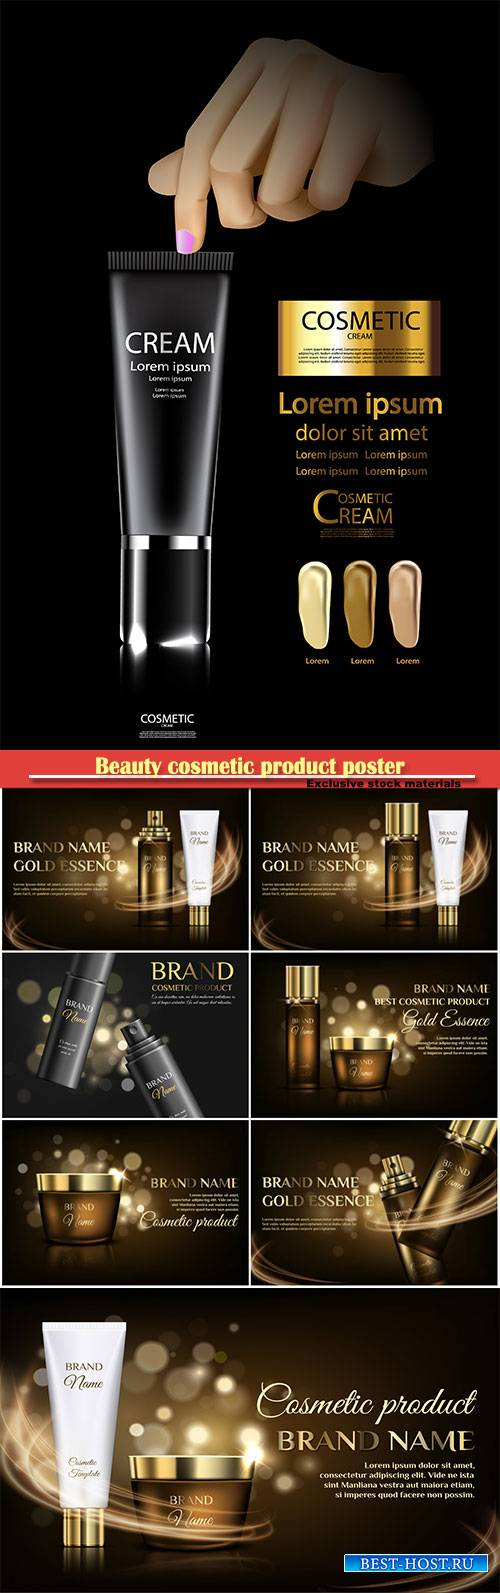 Beauty cosmetic product poster, Bottle package skin care cream